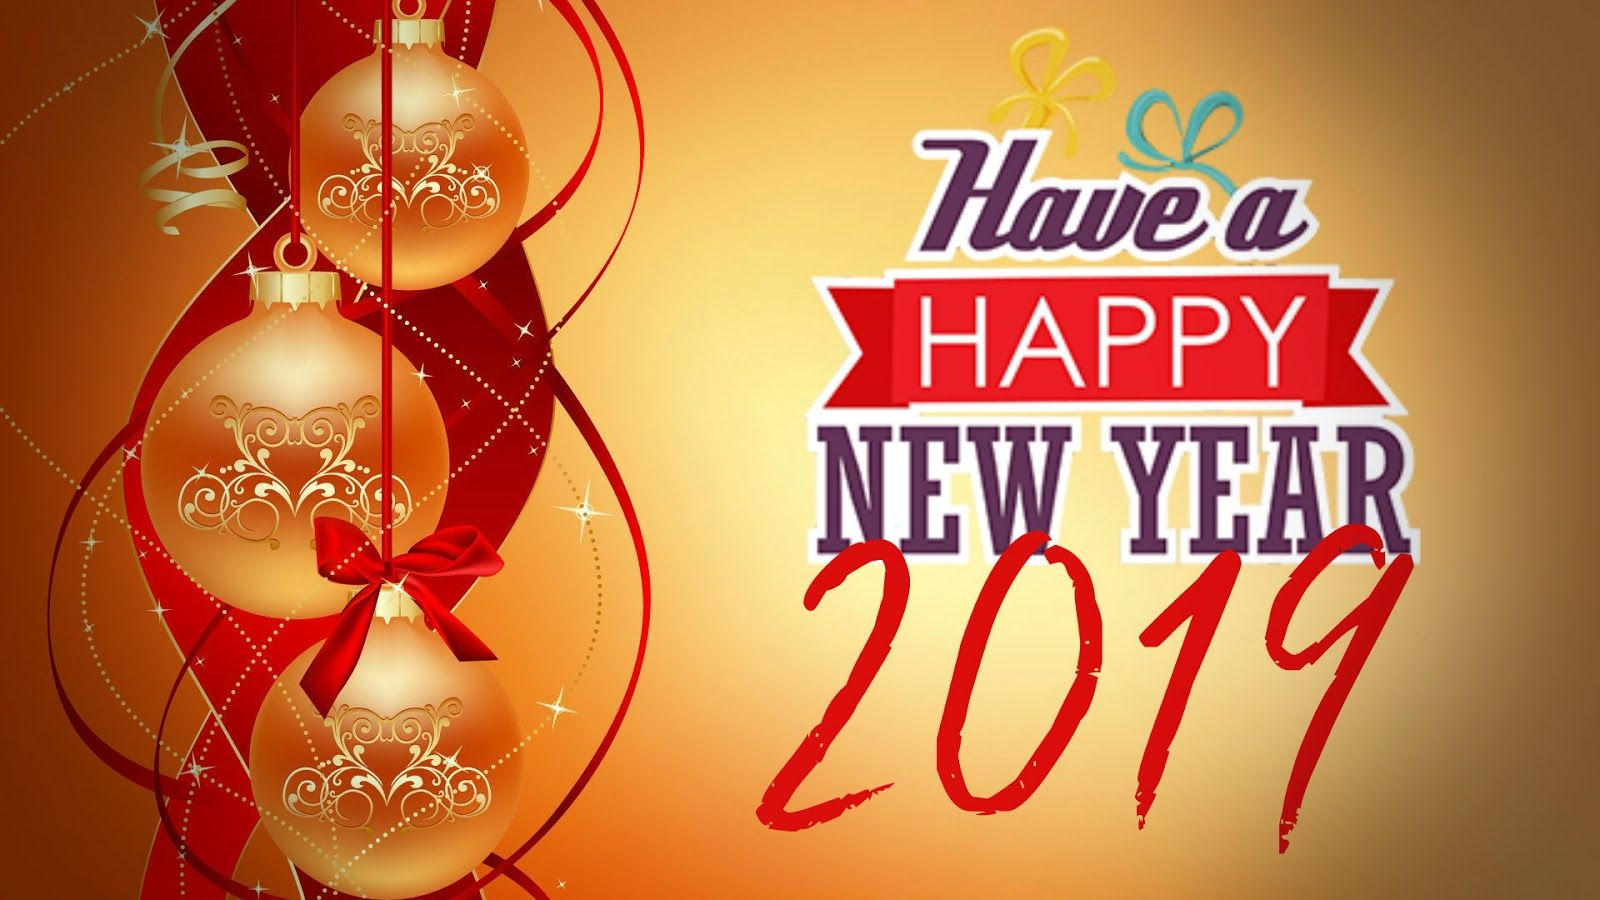 Happy New Year 2019 Quotes Images Wishes And Greetings Happy New Year Pictures Happy New Year Greetings Happy New Year Images